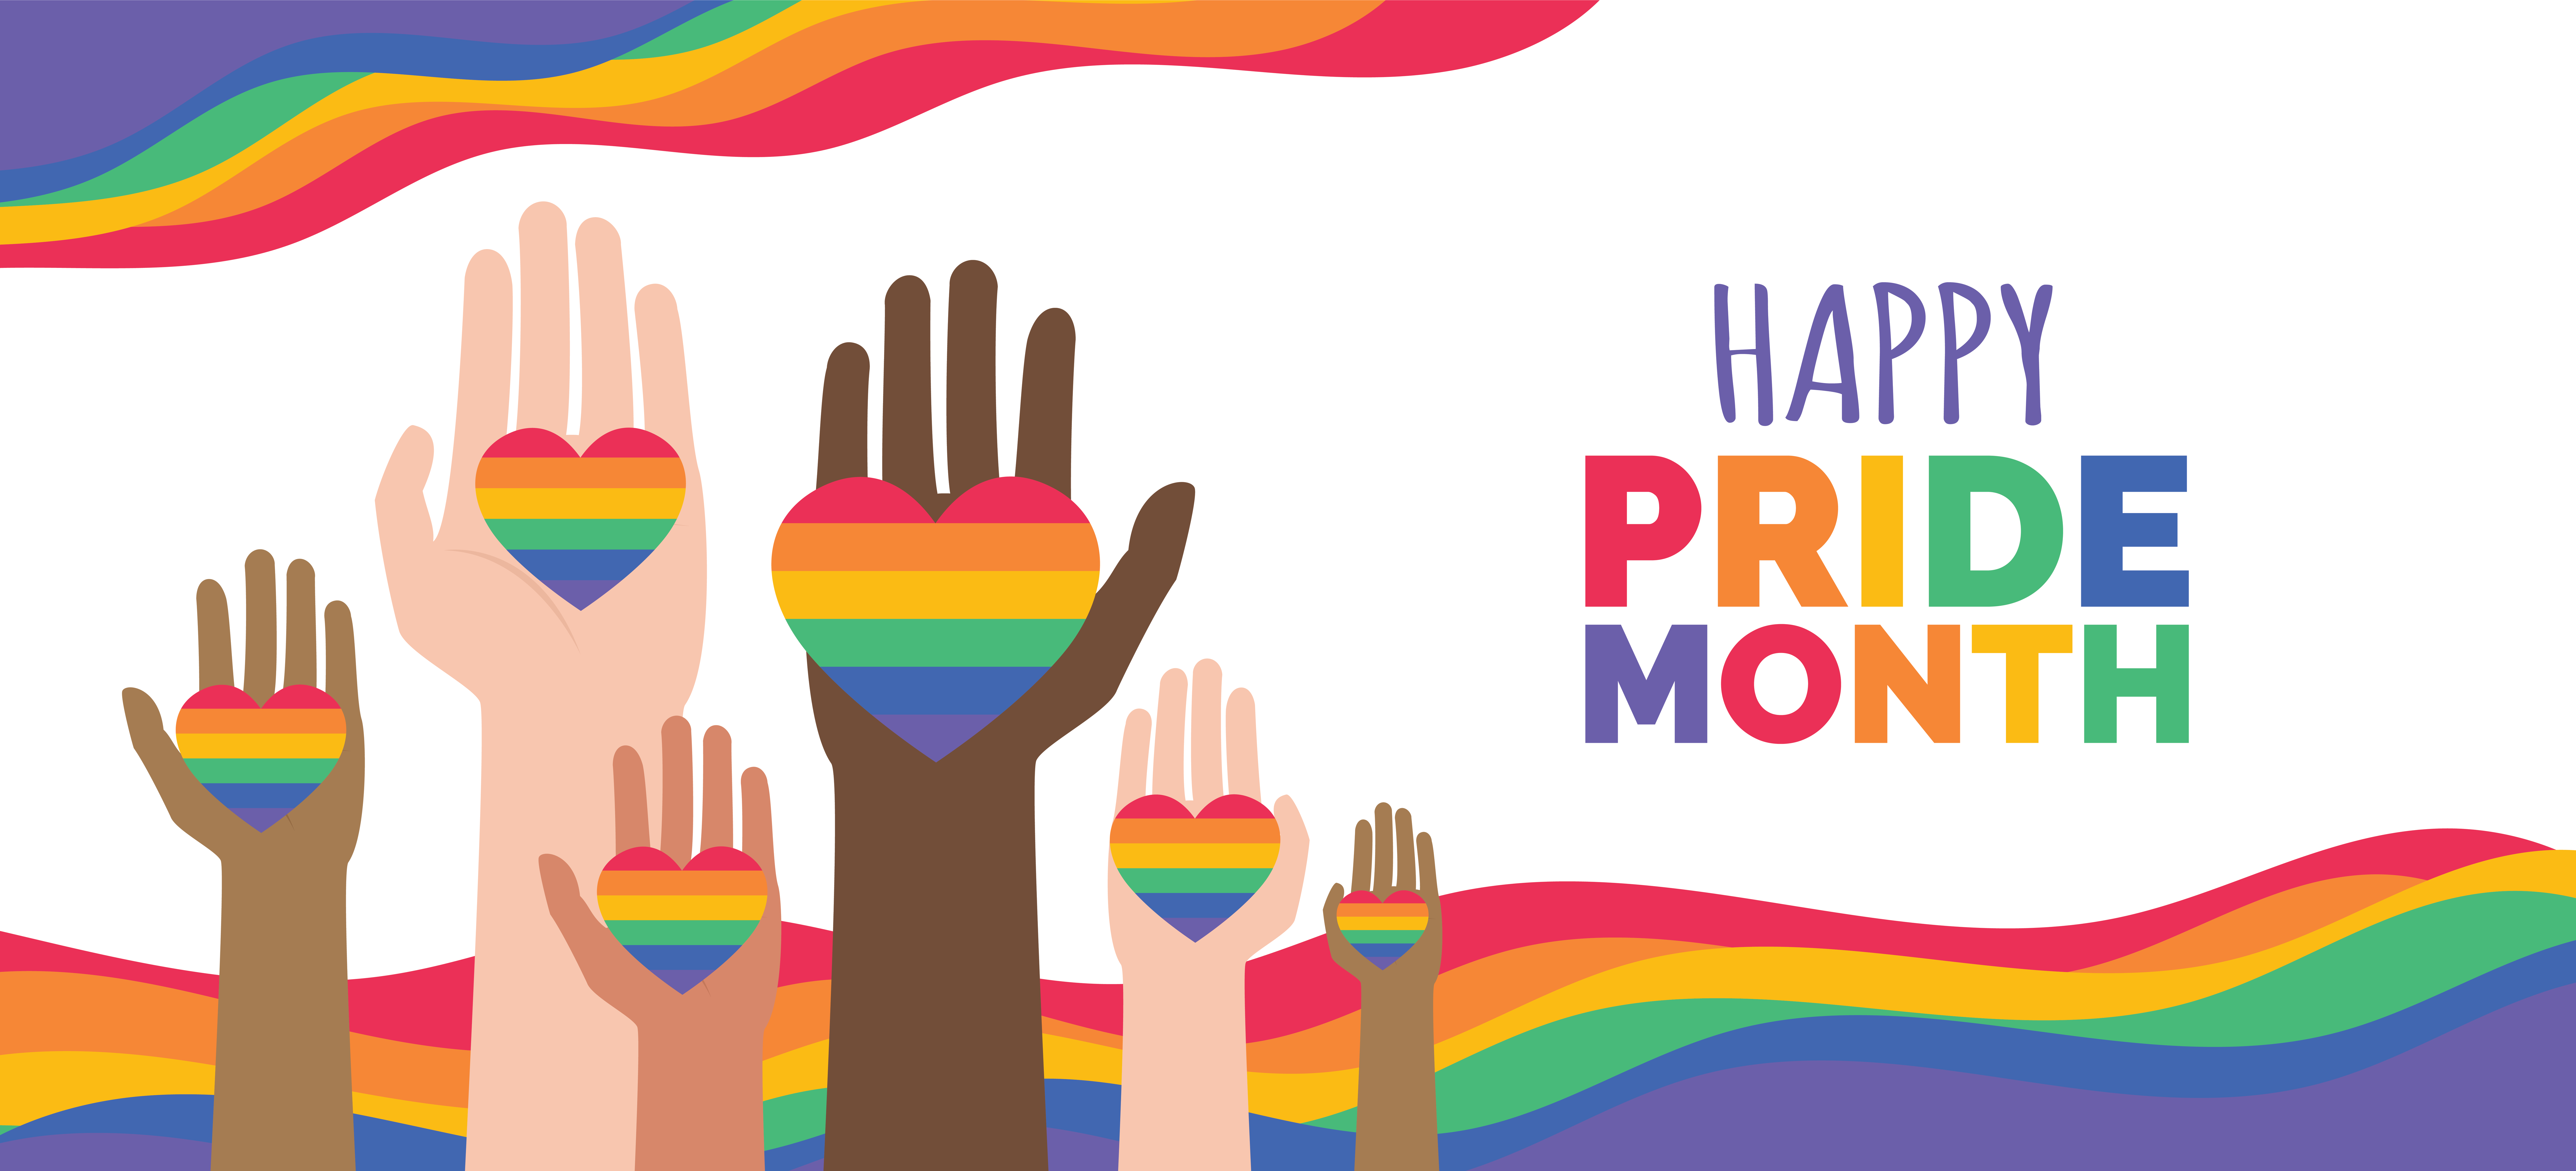 Pride Month stock image